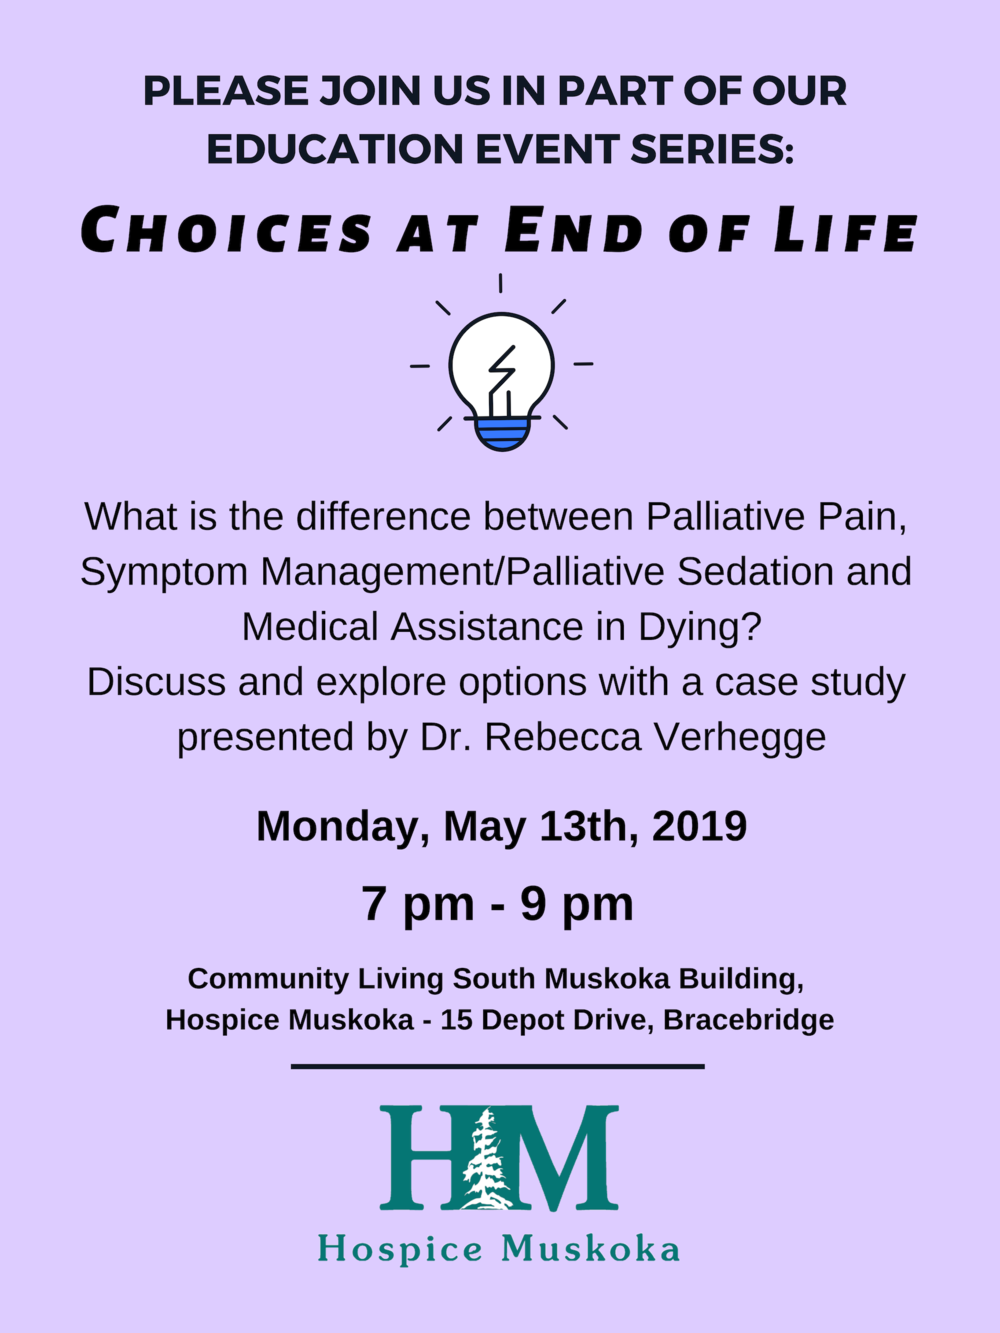 Please join Hospice Muskoka in part of our Education Event Series_.png